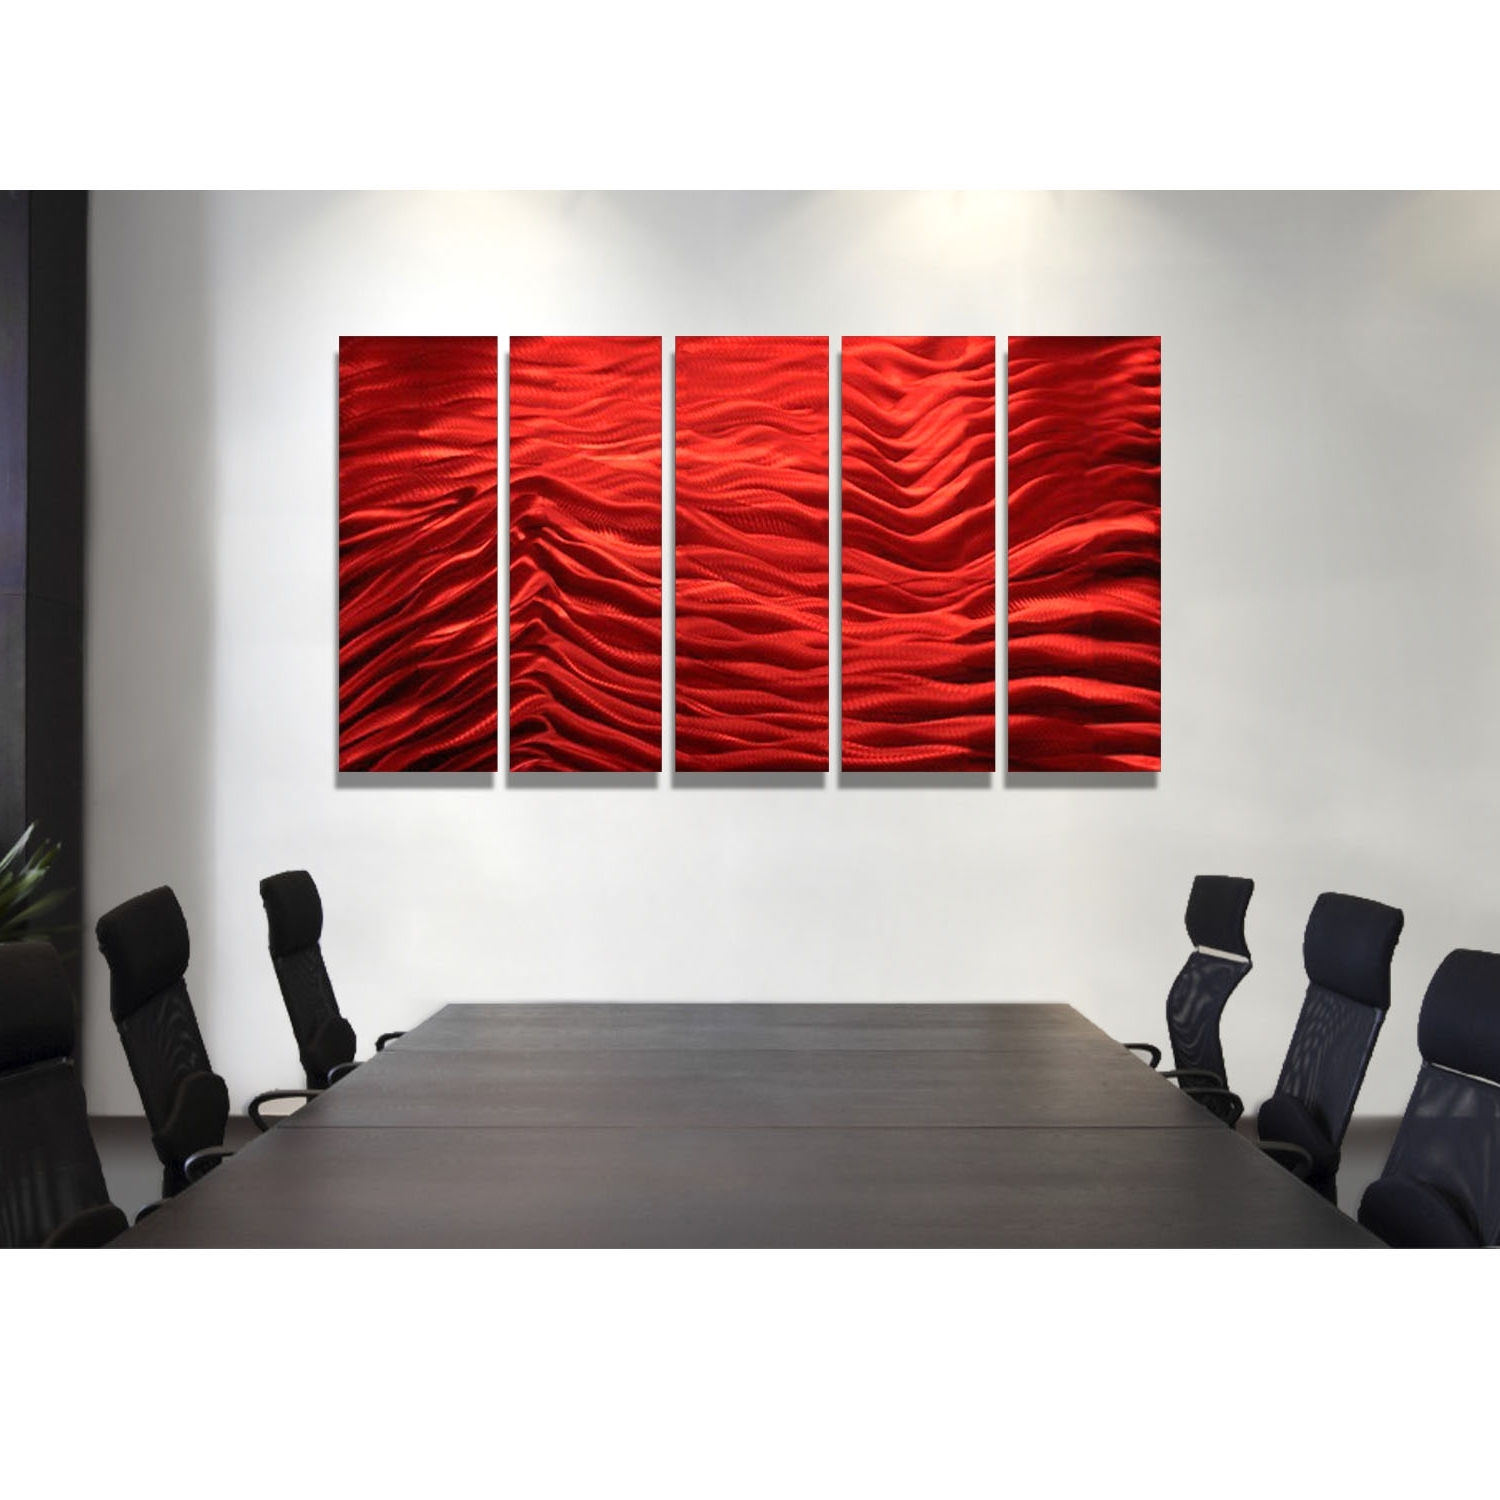 Most Current Red Inertia – Red Metal Wall Art – 5 Panel Wall Décorjon Allen For Panel Wall Art (View 5 of 15)